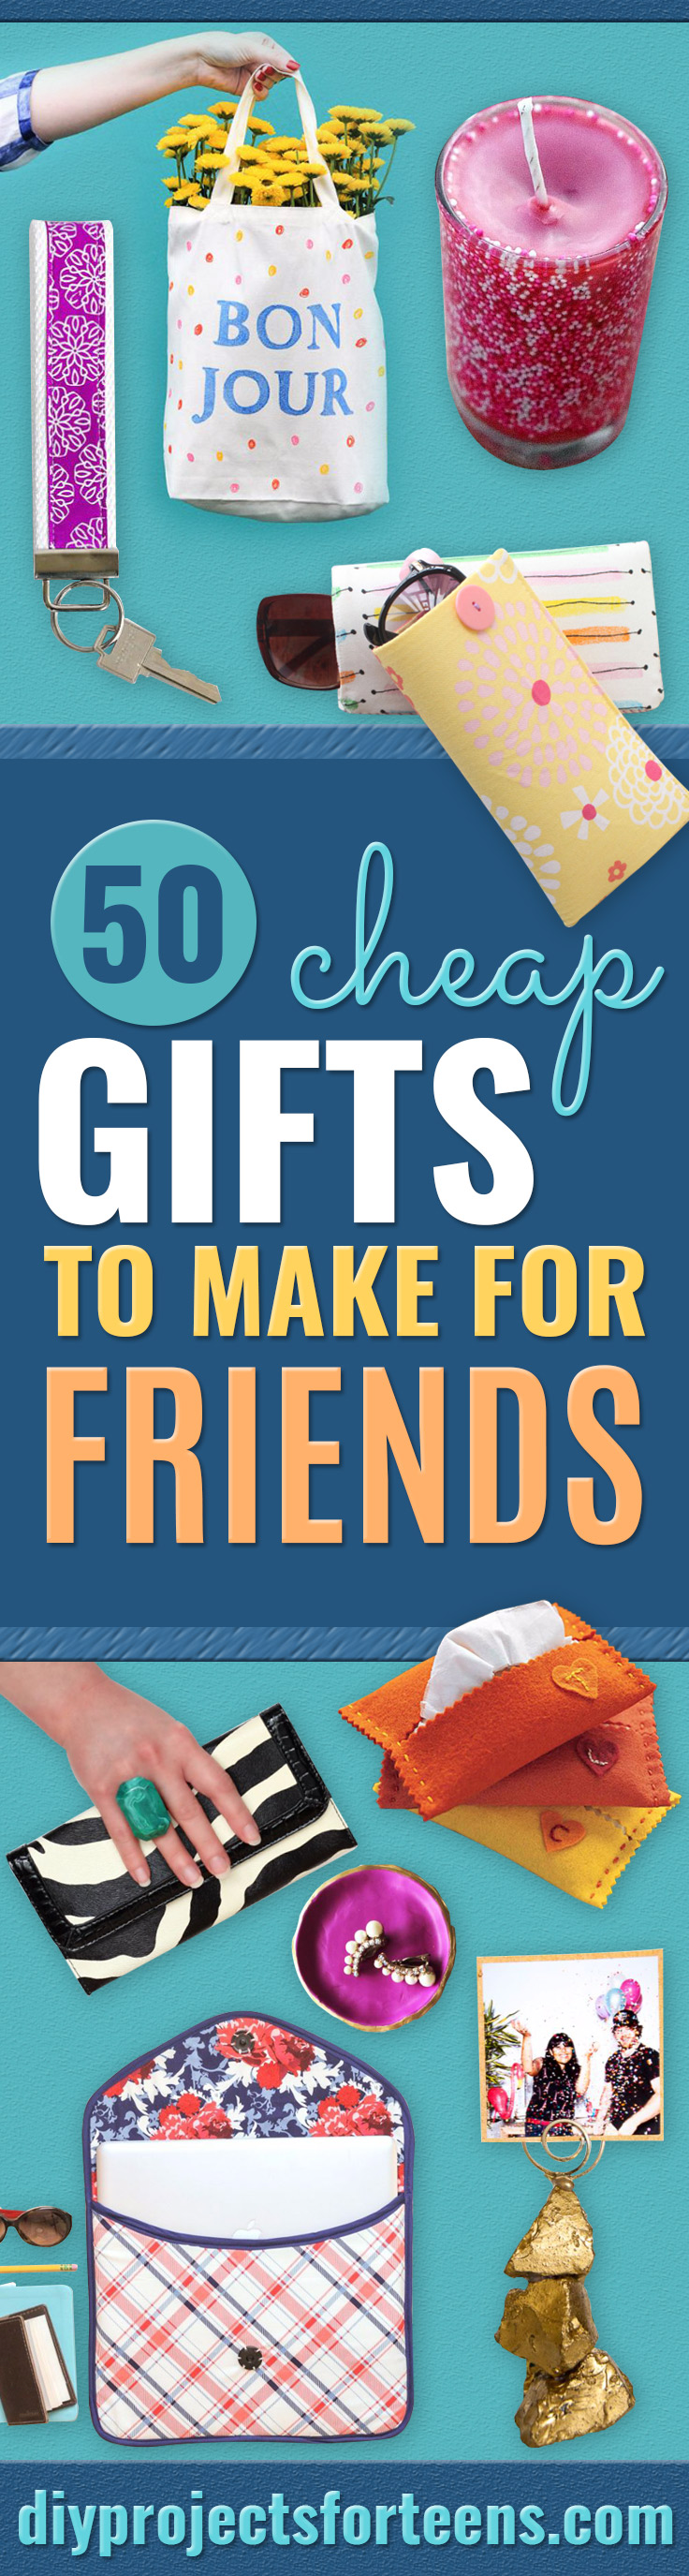 Cheap DIY Gifts and Inexpensive Homemade Christmas Gift Ideas for People on A Budget - To Make These Cool Presents Instead of Buying for the Holidays - Easy and Low Cost Gifts fTo Make For Friends and Neighbors - Quick Dollar Store Crafts and Projects for Xmas Gift Giving Parties - Step by Step Tutorials and Instructions http://diyjoy.com/cheap-gifts-to-make-for-friends